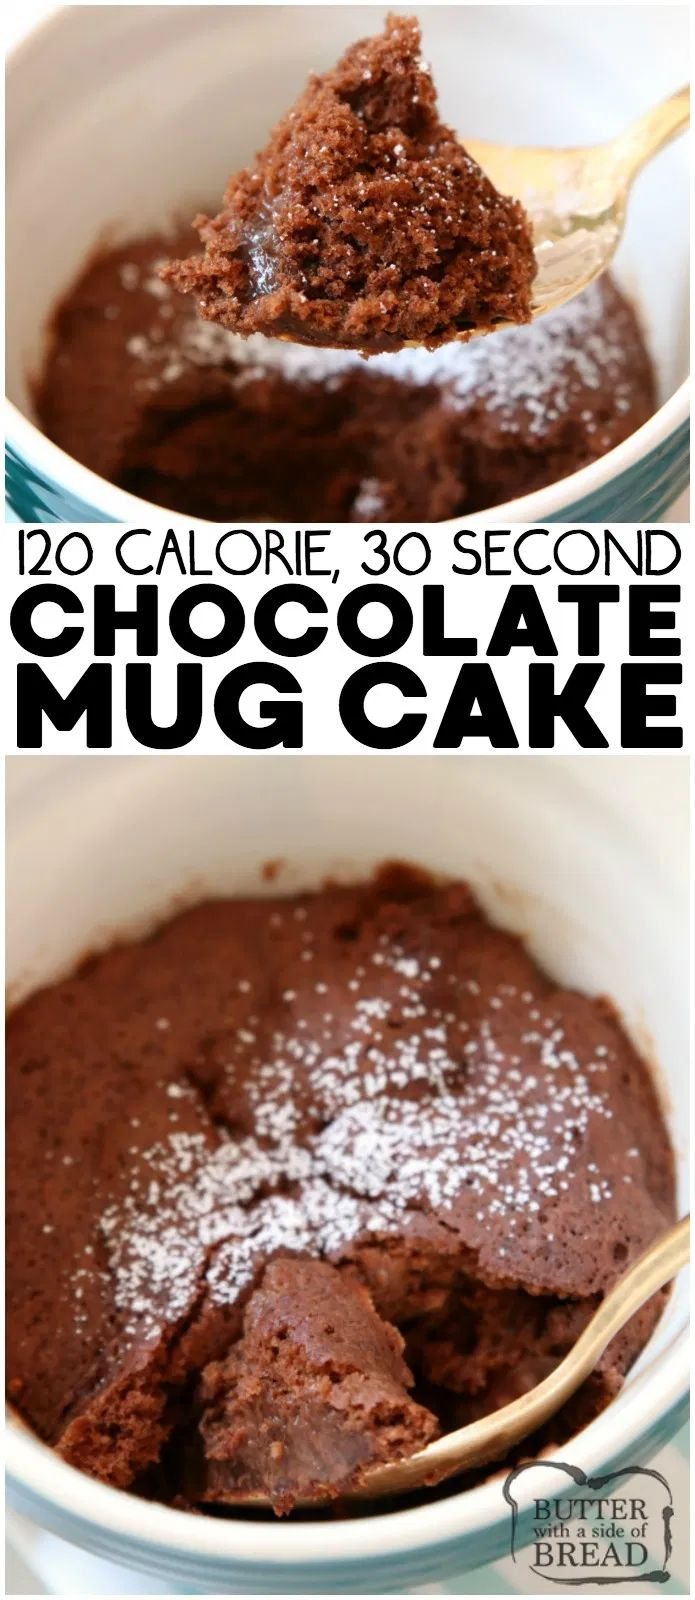 100 Calorie Chocolate Mug Cake Recipe made with common ...